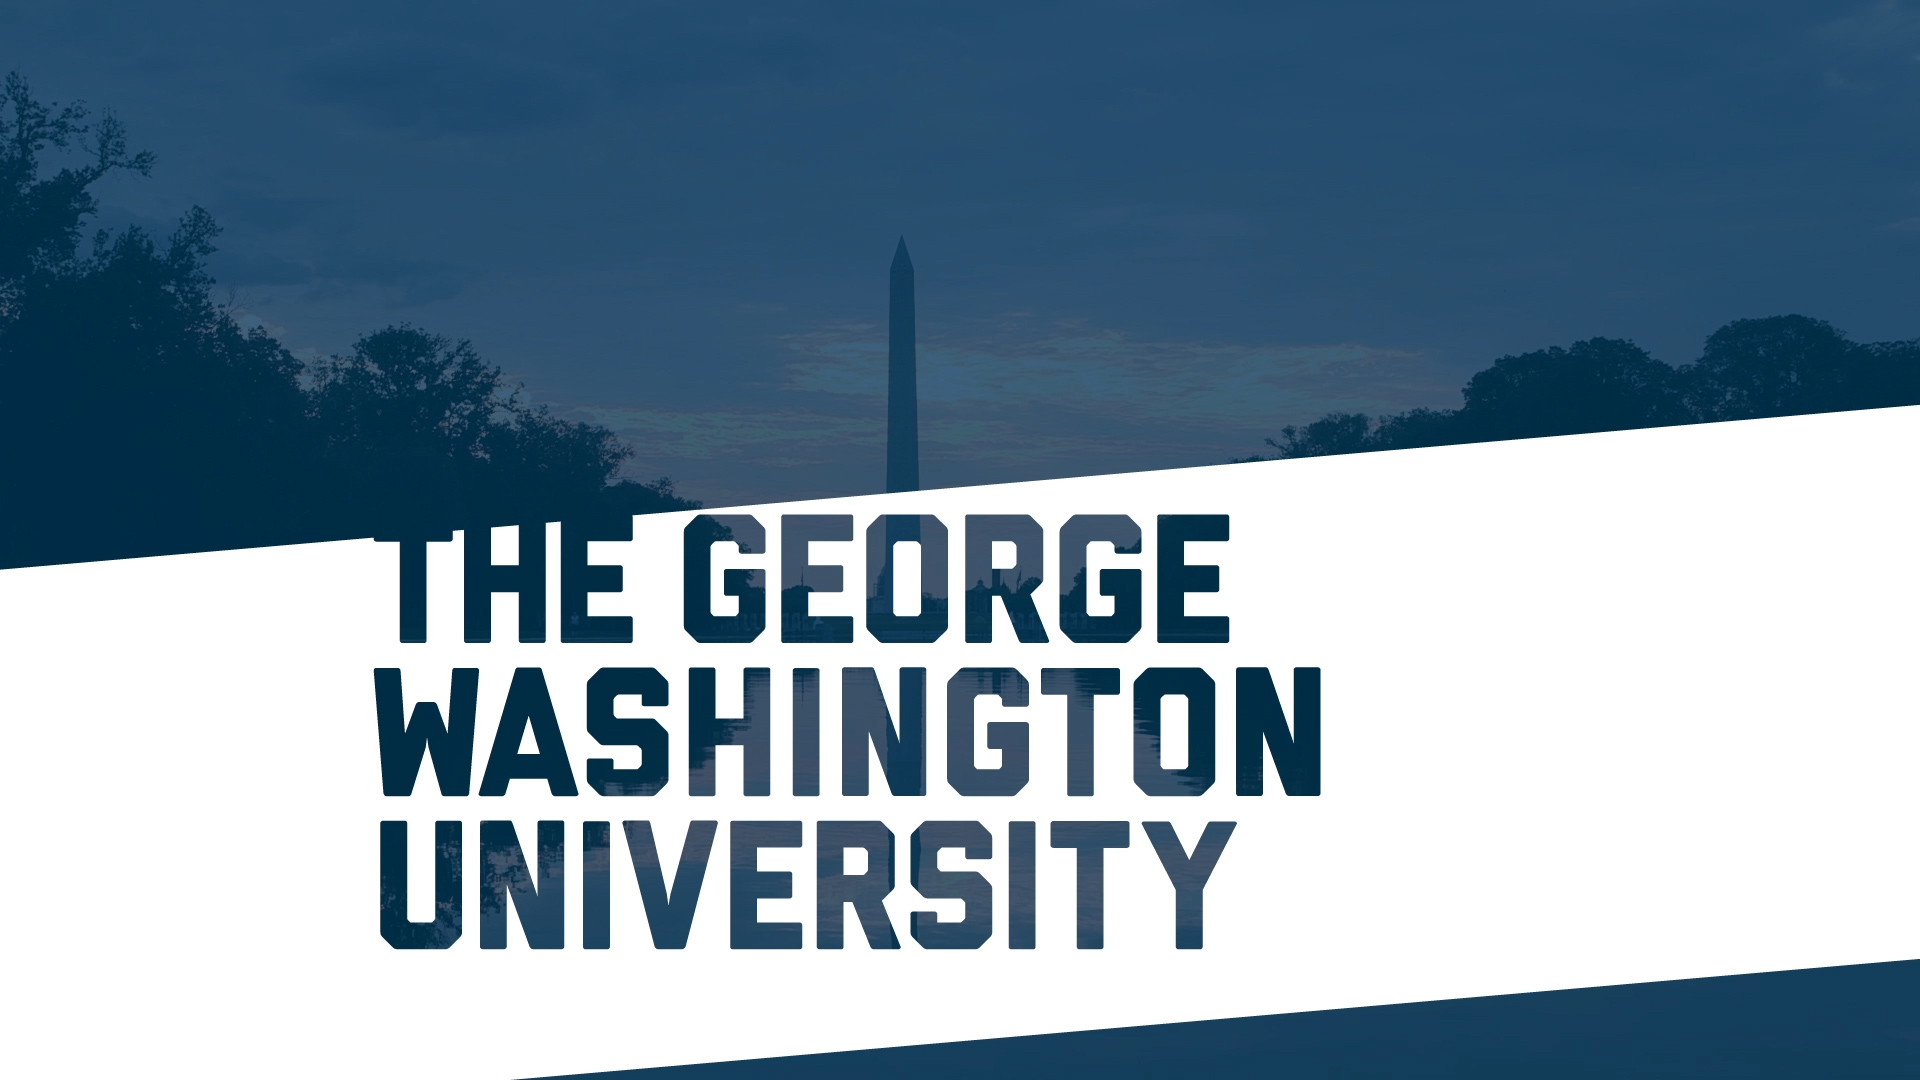 leadership and george washington university The minority leadership her passion for public service and inspired her to attend the george washington university's trachtenberg school of public policy.